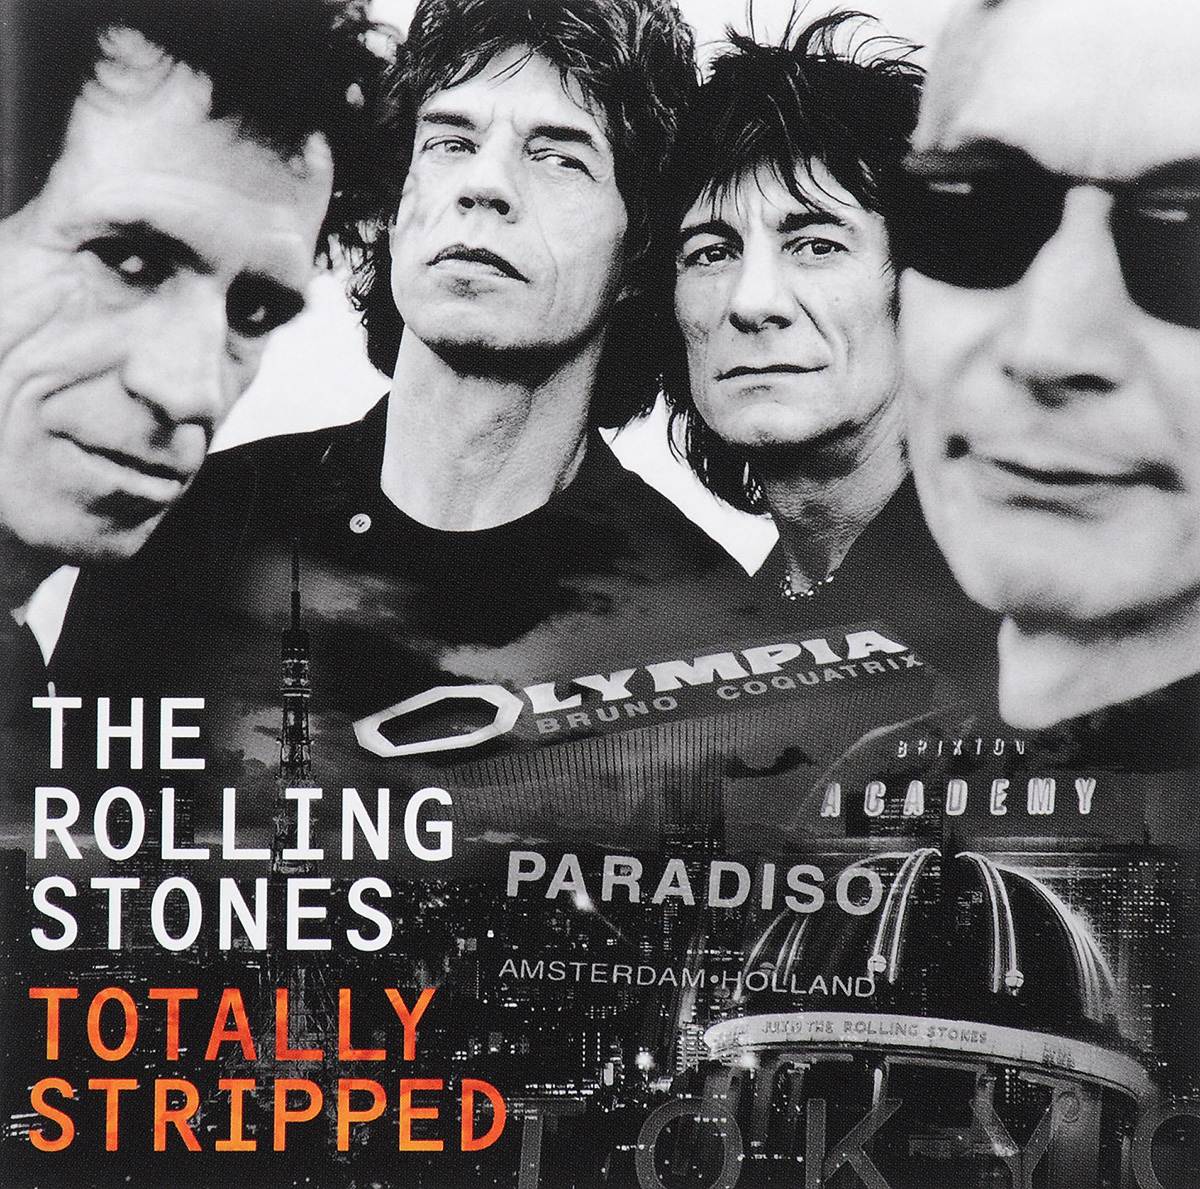 The Rolling Stones The Rolling Stones. Totally Stripped (CD + DVD) 10 hd digital lcd screen car headrest monitor dvd cd player ir fm with remote controller remote mount bracket car player new